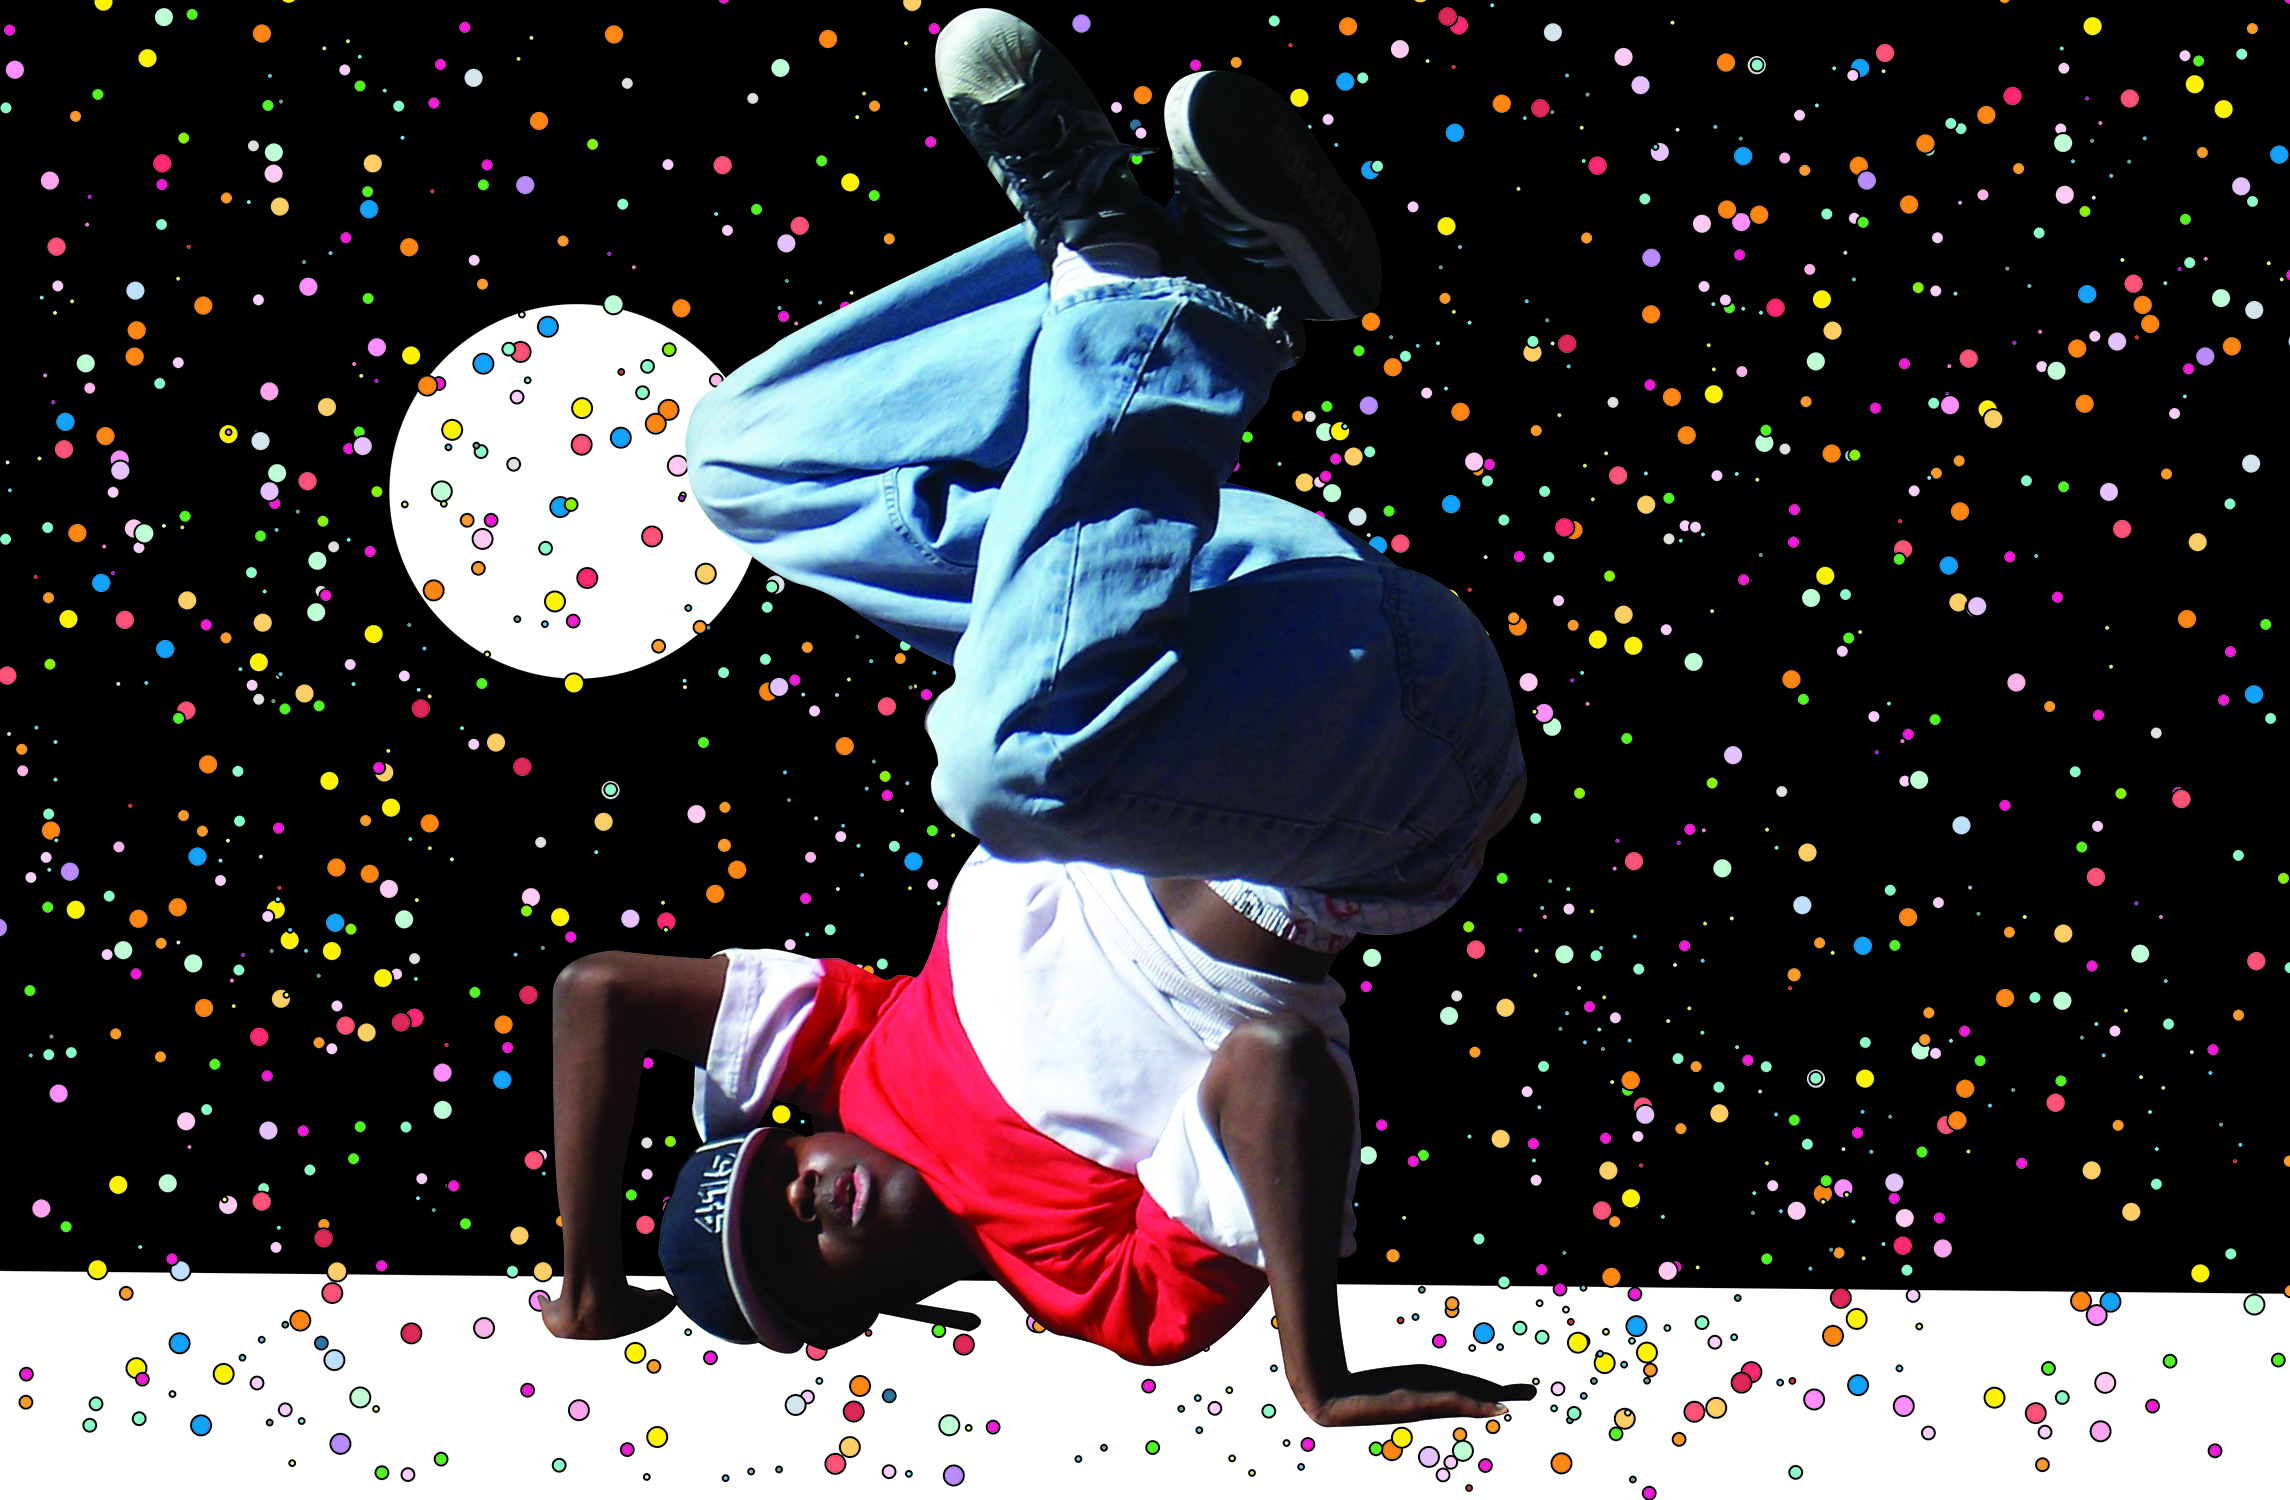 A photo illustration I did of the breakdancer picture I took.